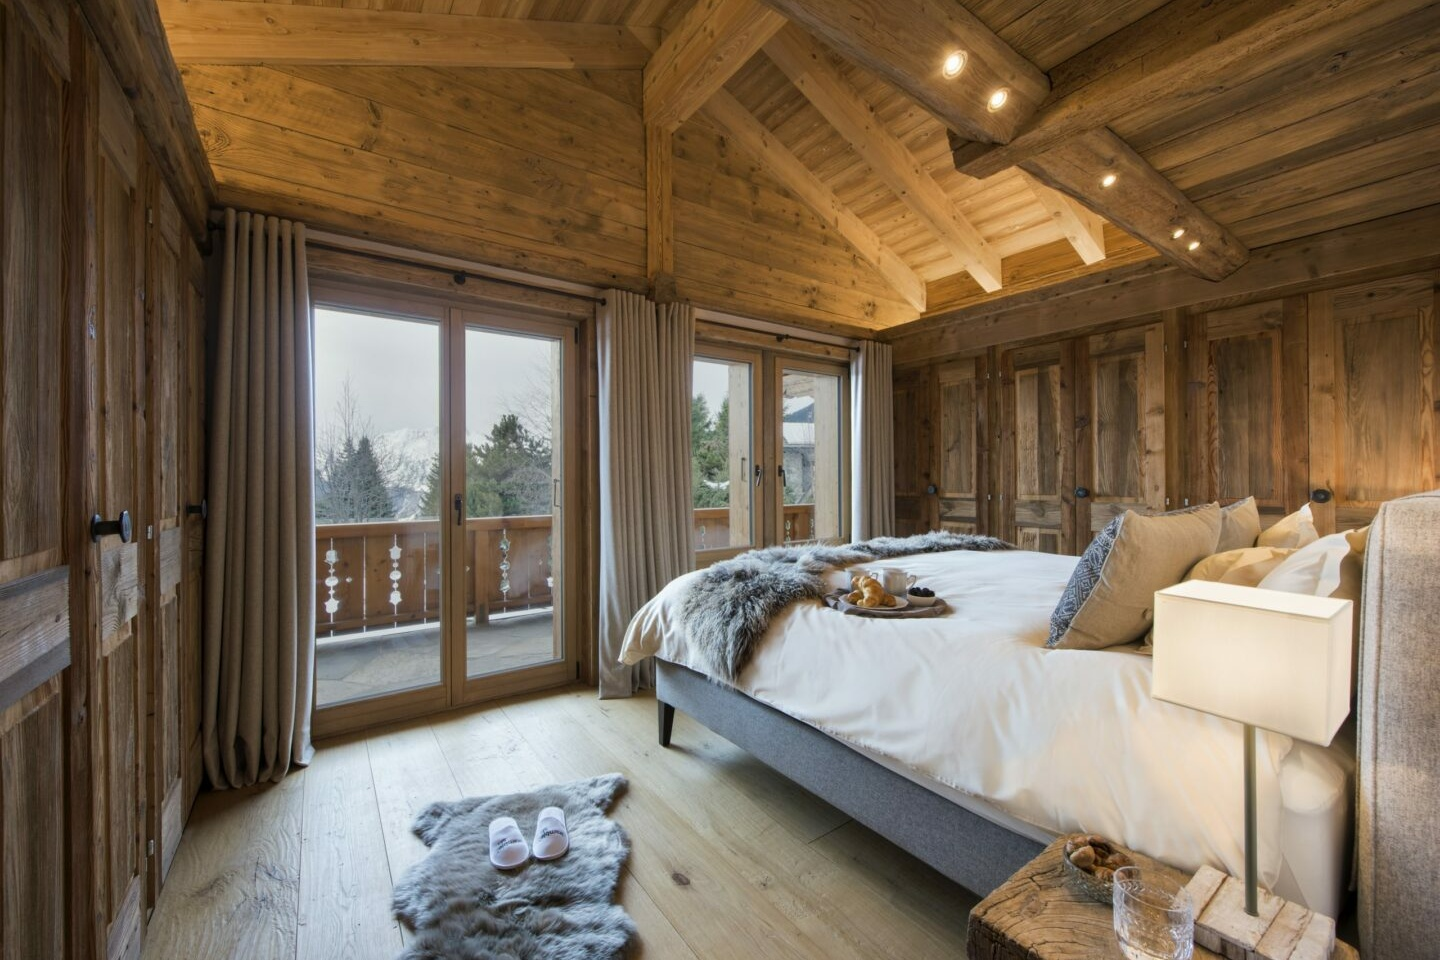 Double bedroom with balcony at Chalet Delormes in Verbier